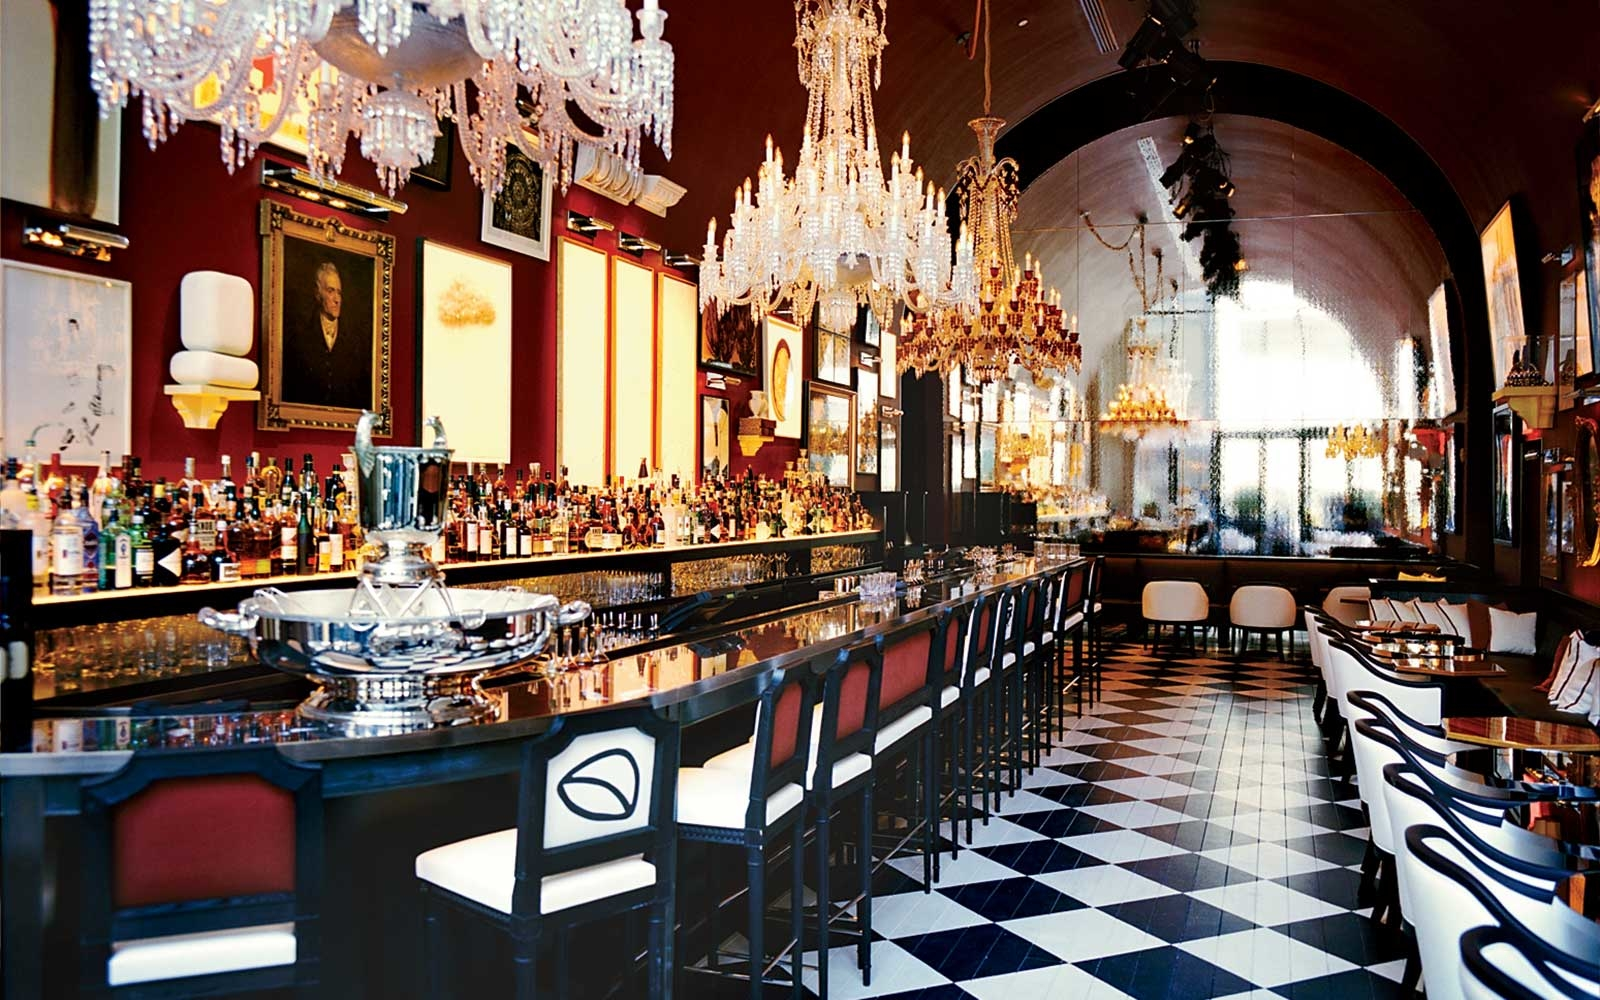 Baccarat Hotels & Residences in New York City